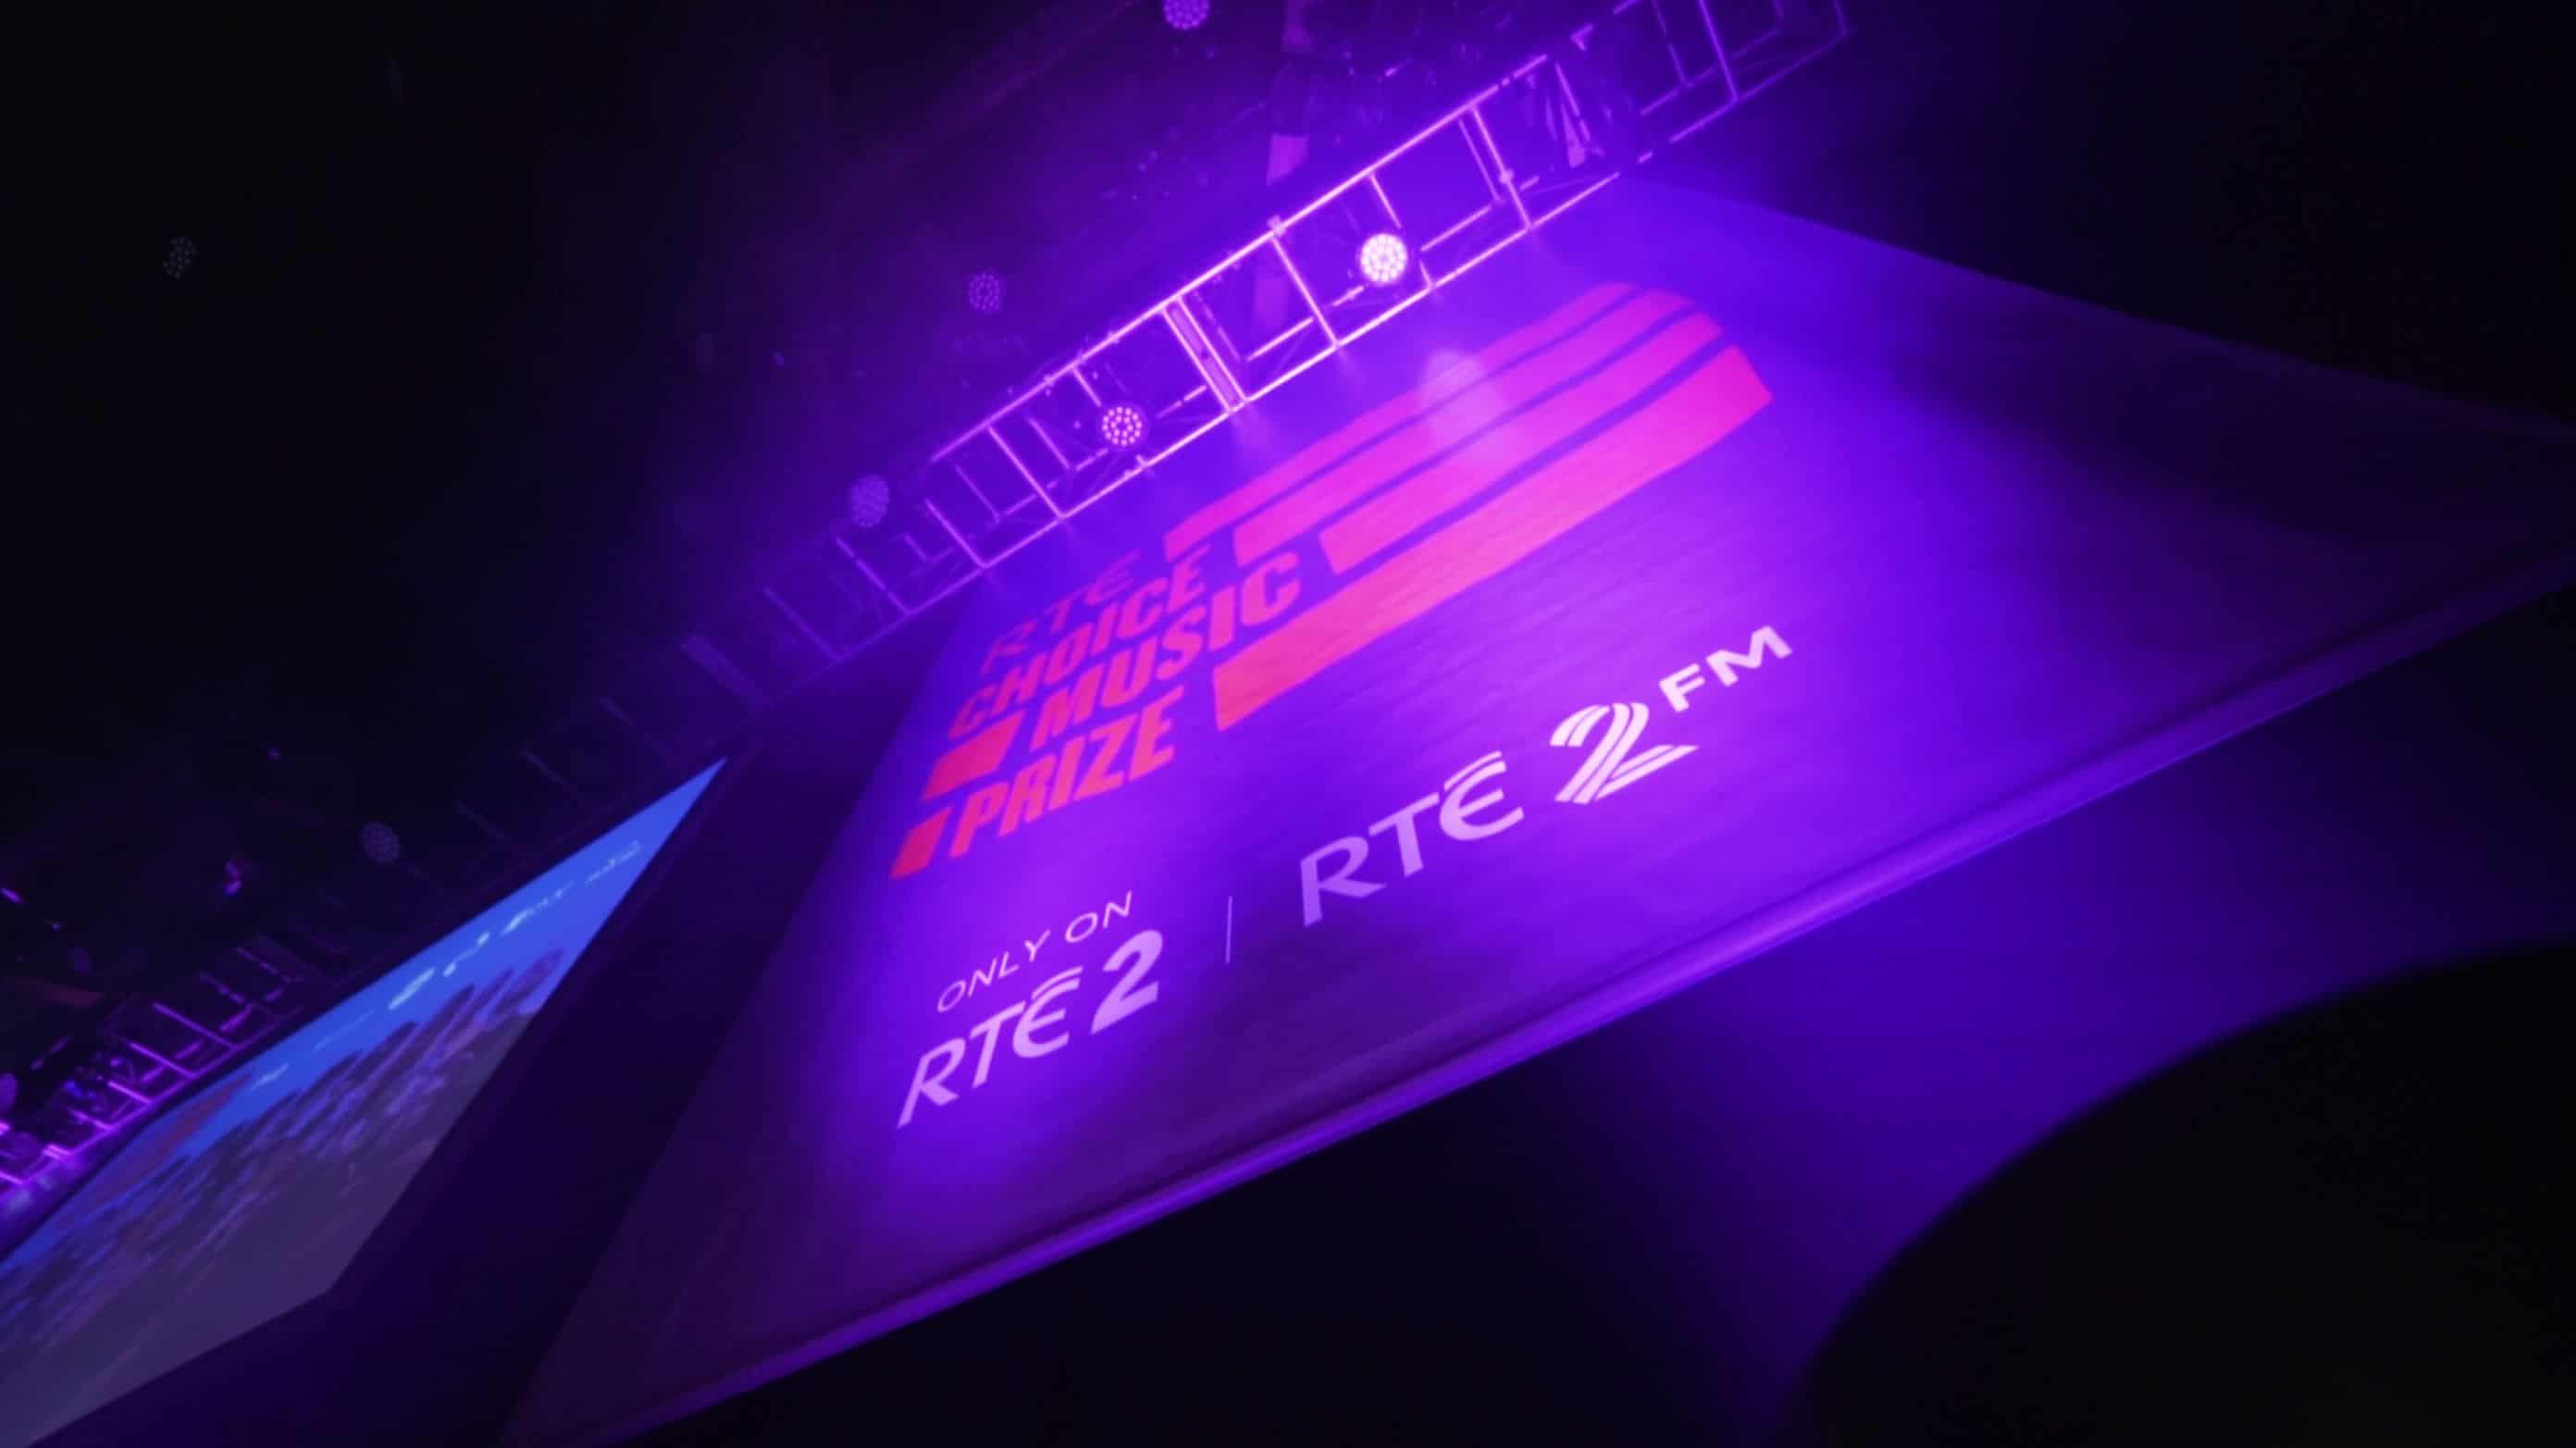 RTE choice music prize banner behind the scenes